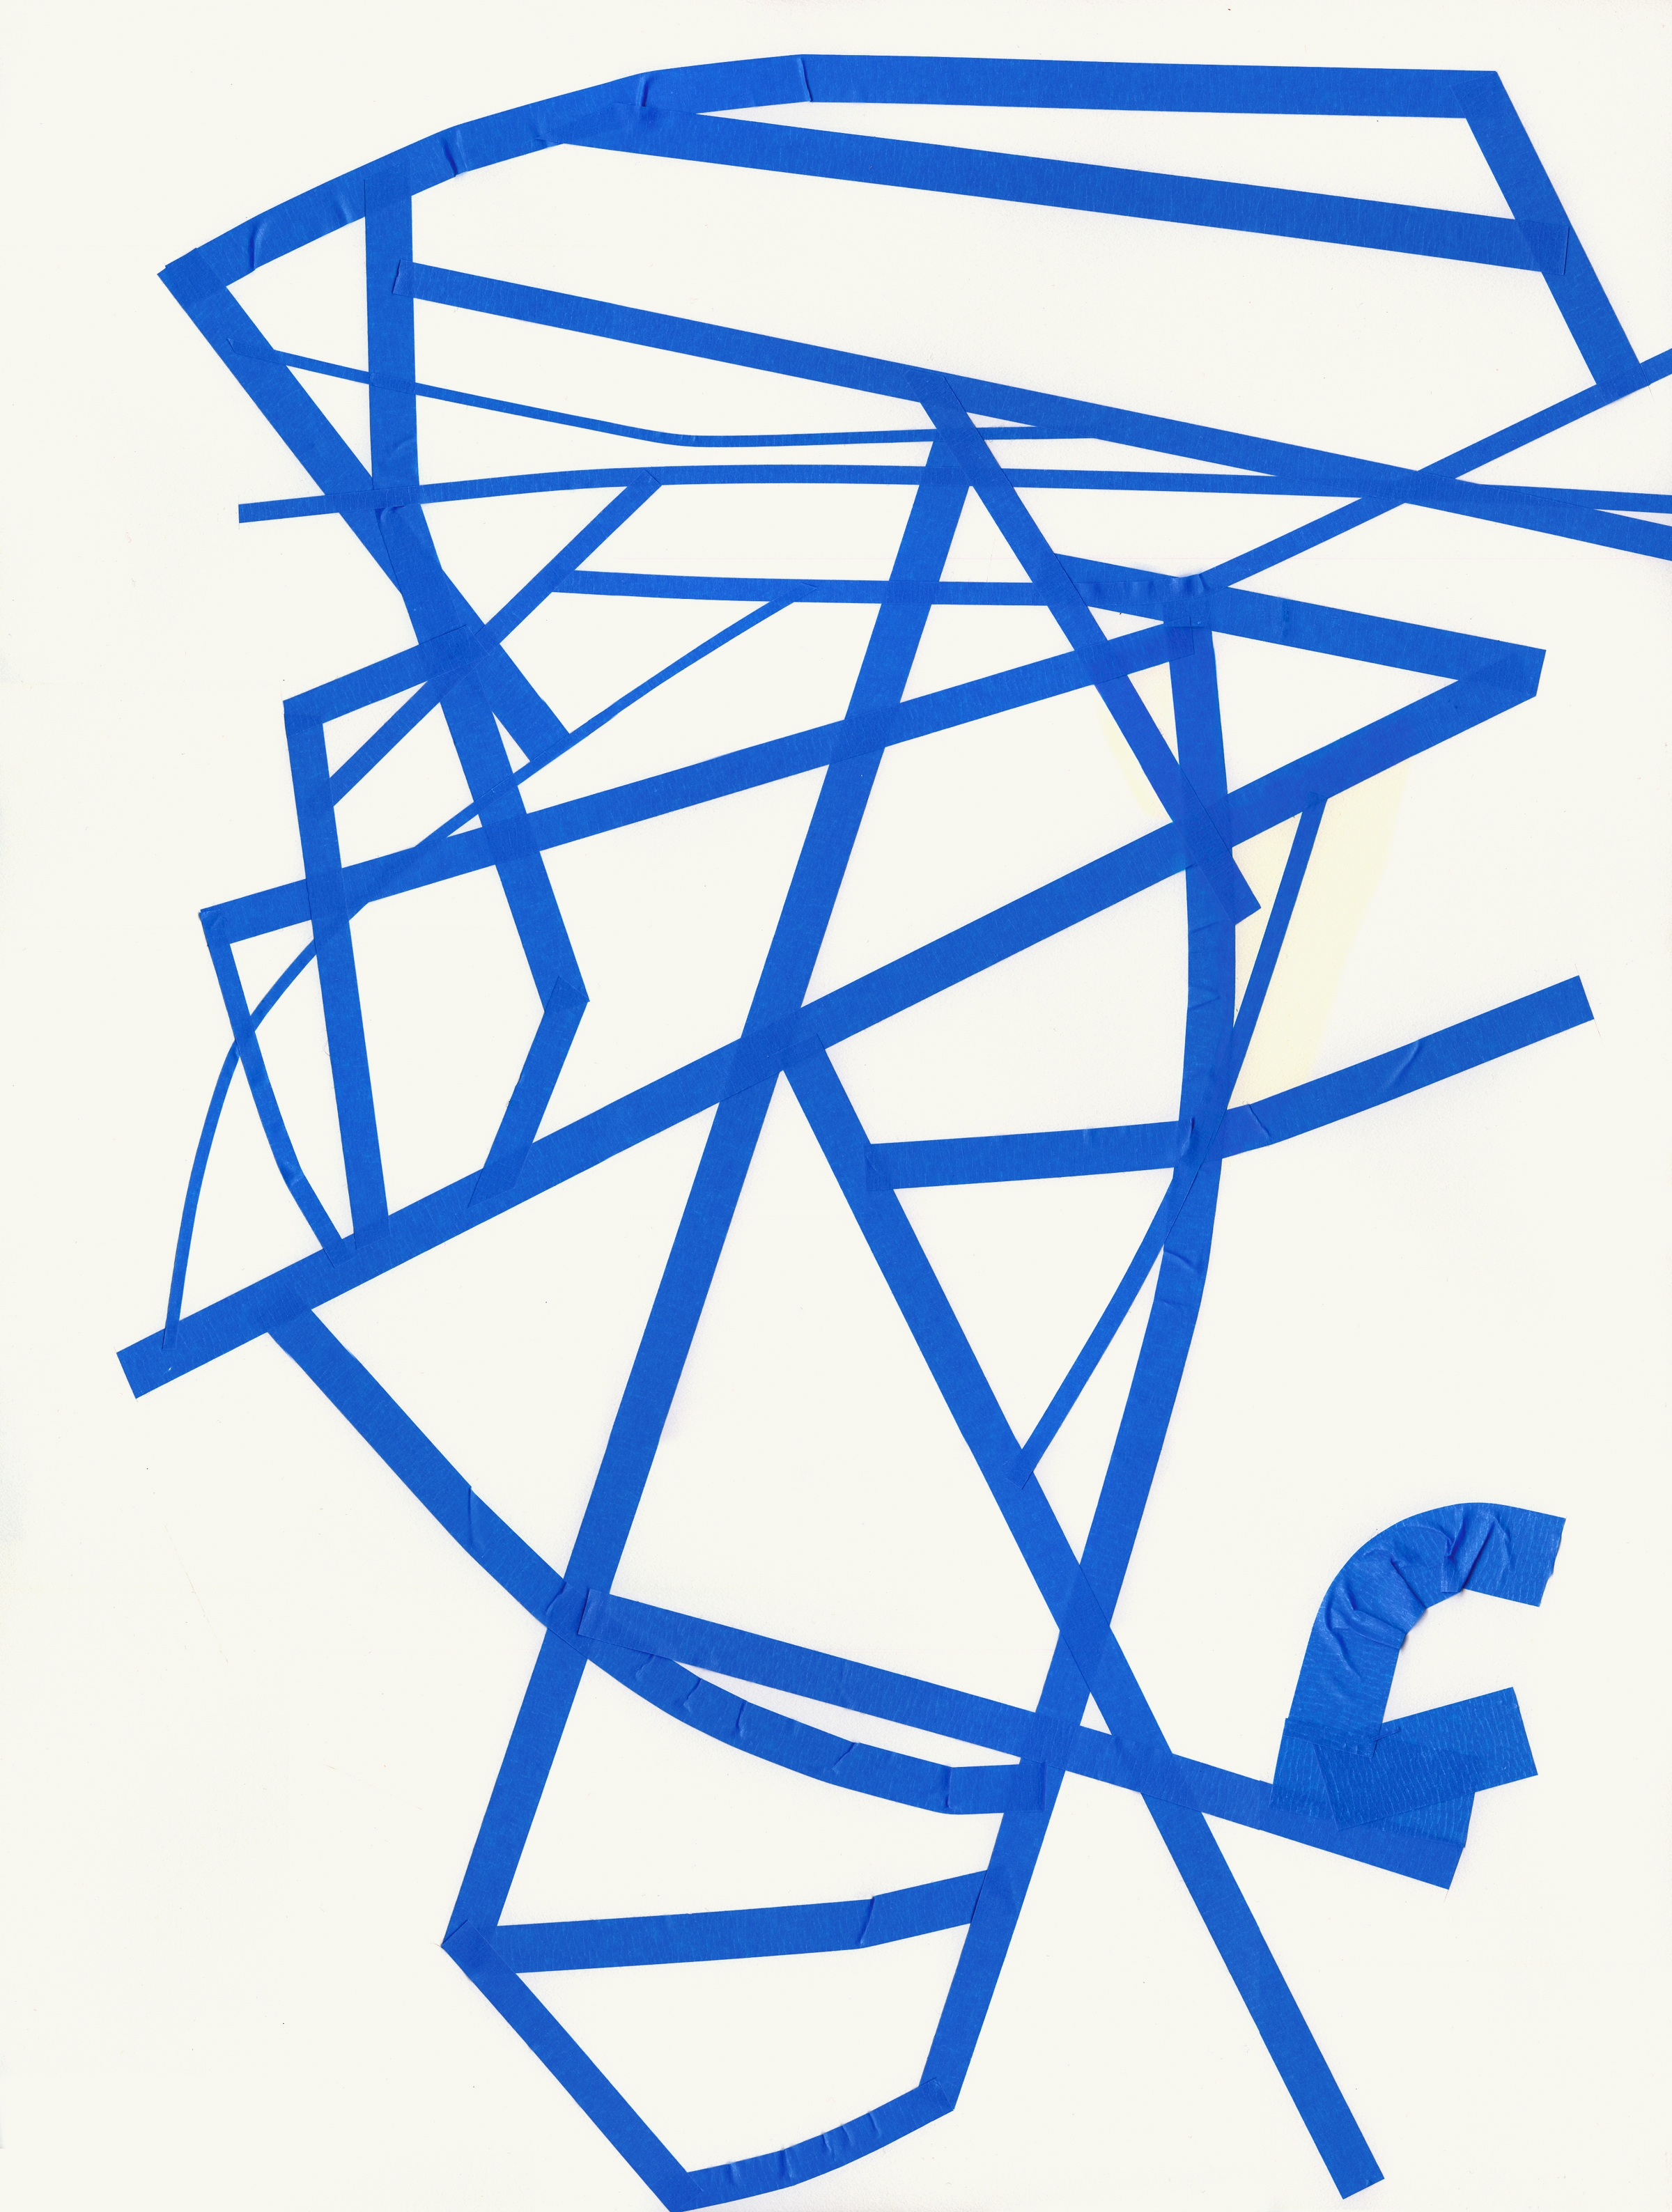 Untitled (t.08.3p), 2008 blue tape on paper 23 53/8 x 18 inches